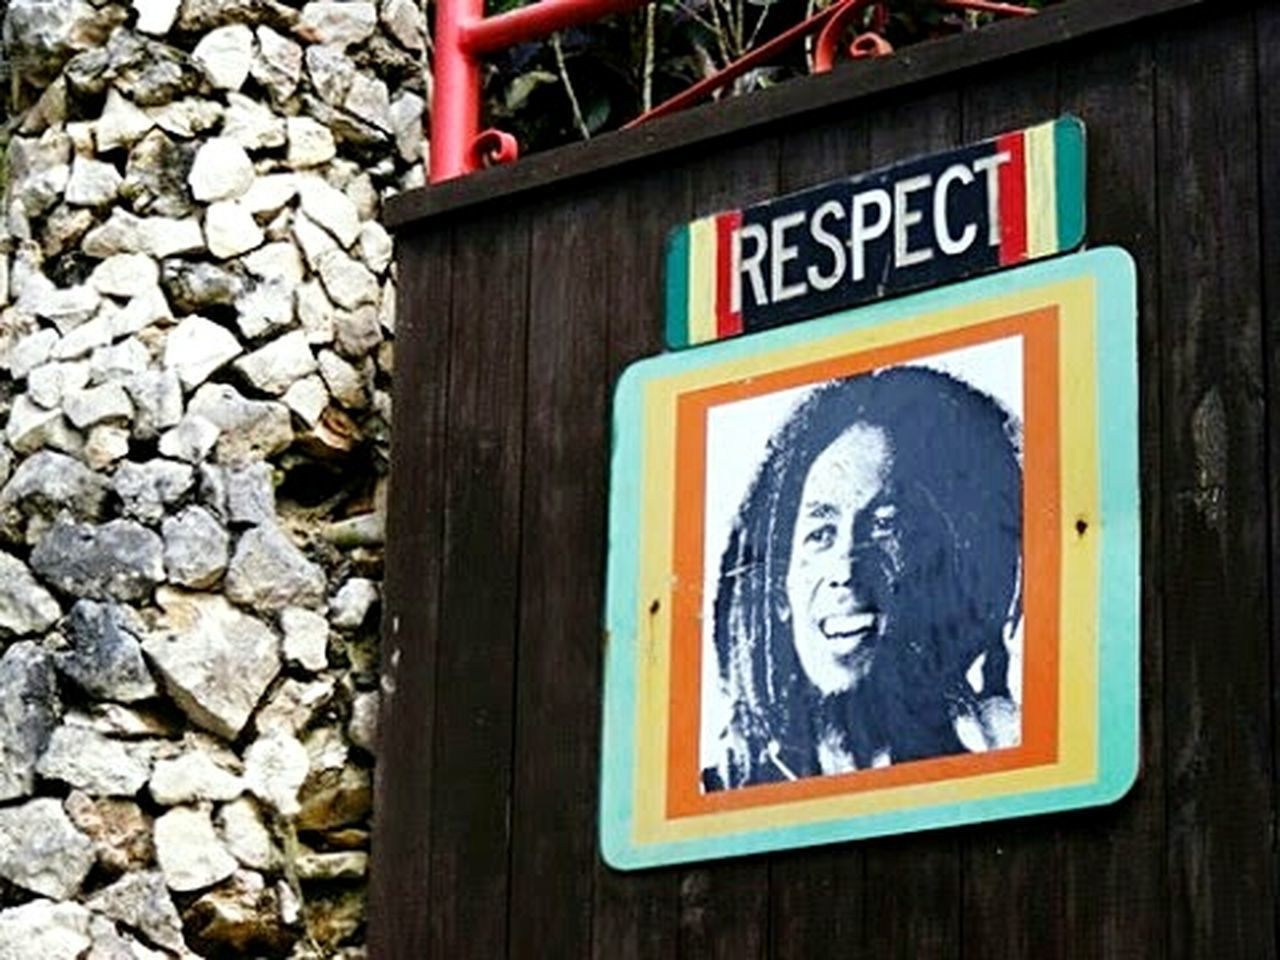 Gates Fences & Beyond Gates And Fences Check This Out Outdoor Pictures Outdoors Bob Marley Day Bob Marley ✌ Jamaican Vibes Rastafari RASTA Rasta Love Respect Respect Ocho Rios Jamaica OchosRios Ocho Rios Wooden Gate Wooden Gateway. Art Is Everywhere EyeEm Travel Traveling The World